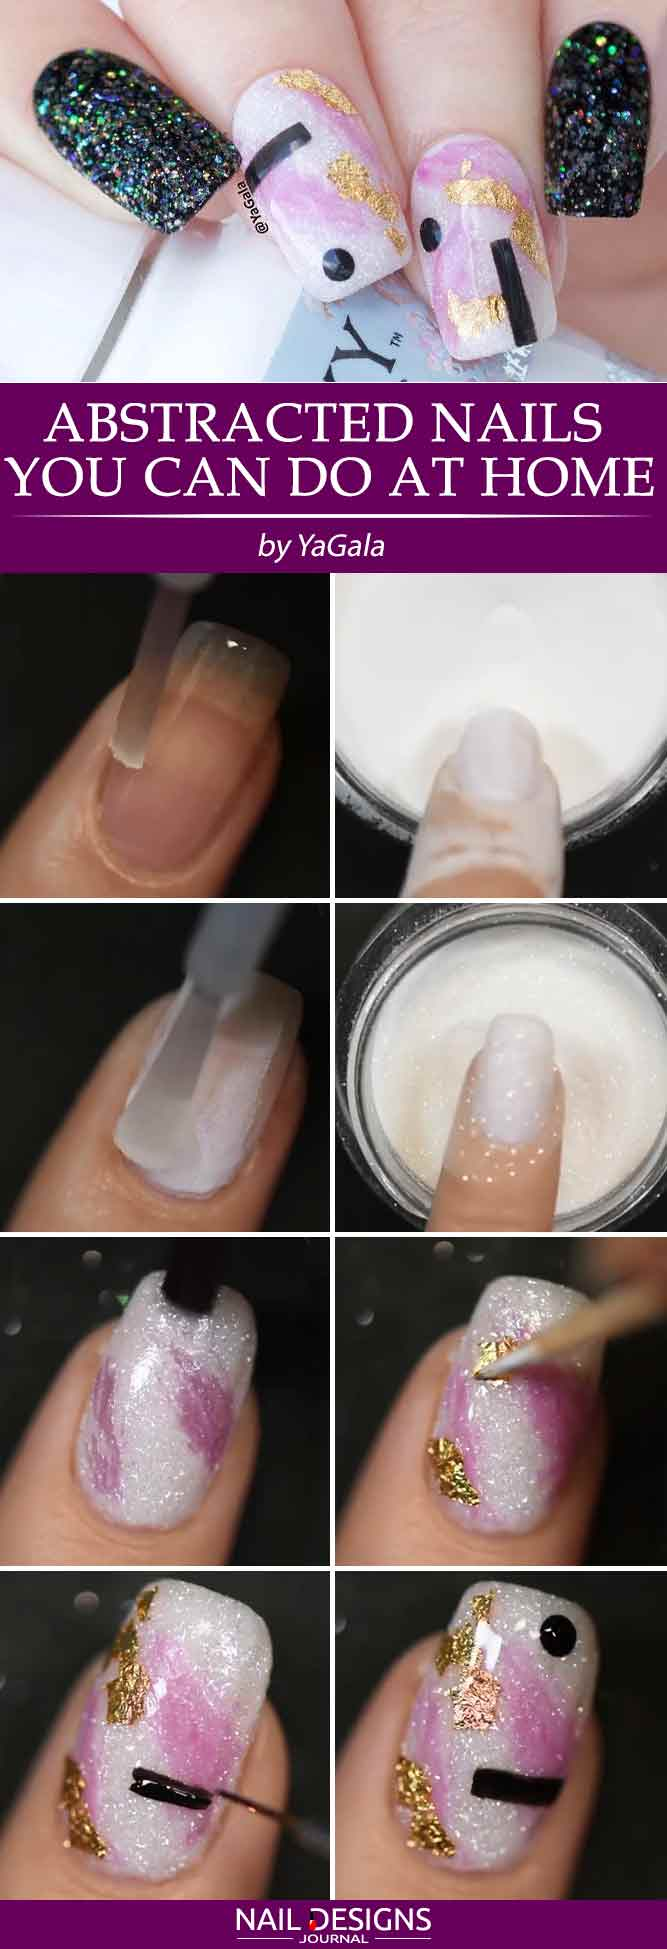 Abstract Nail Art You Can Do At Home #diynails #easynailart